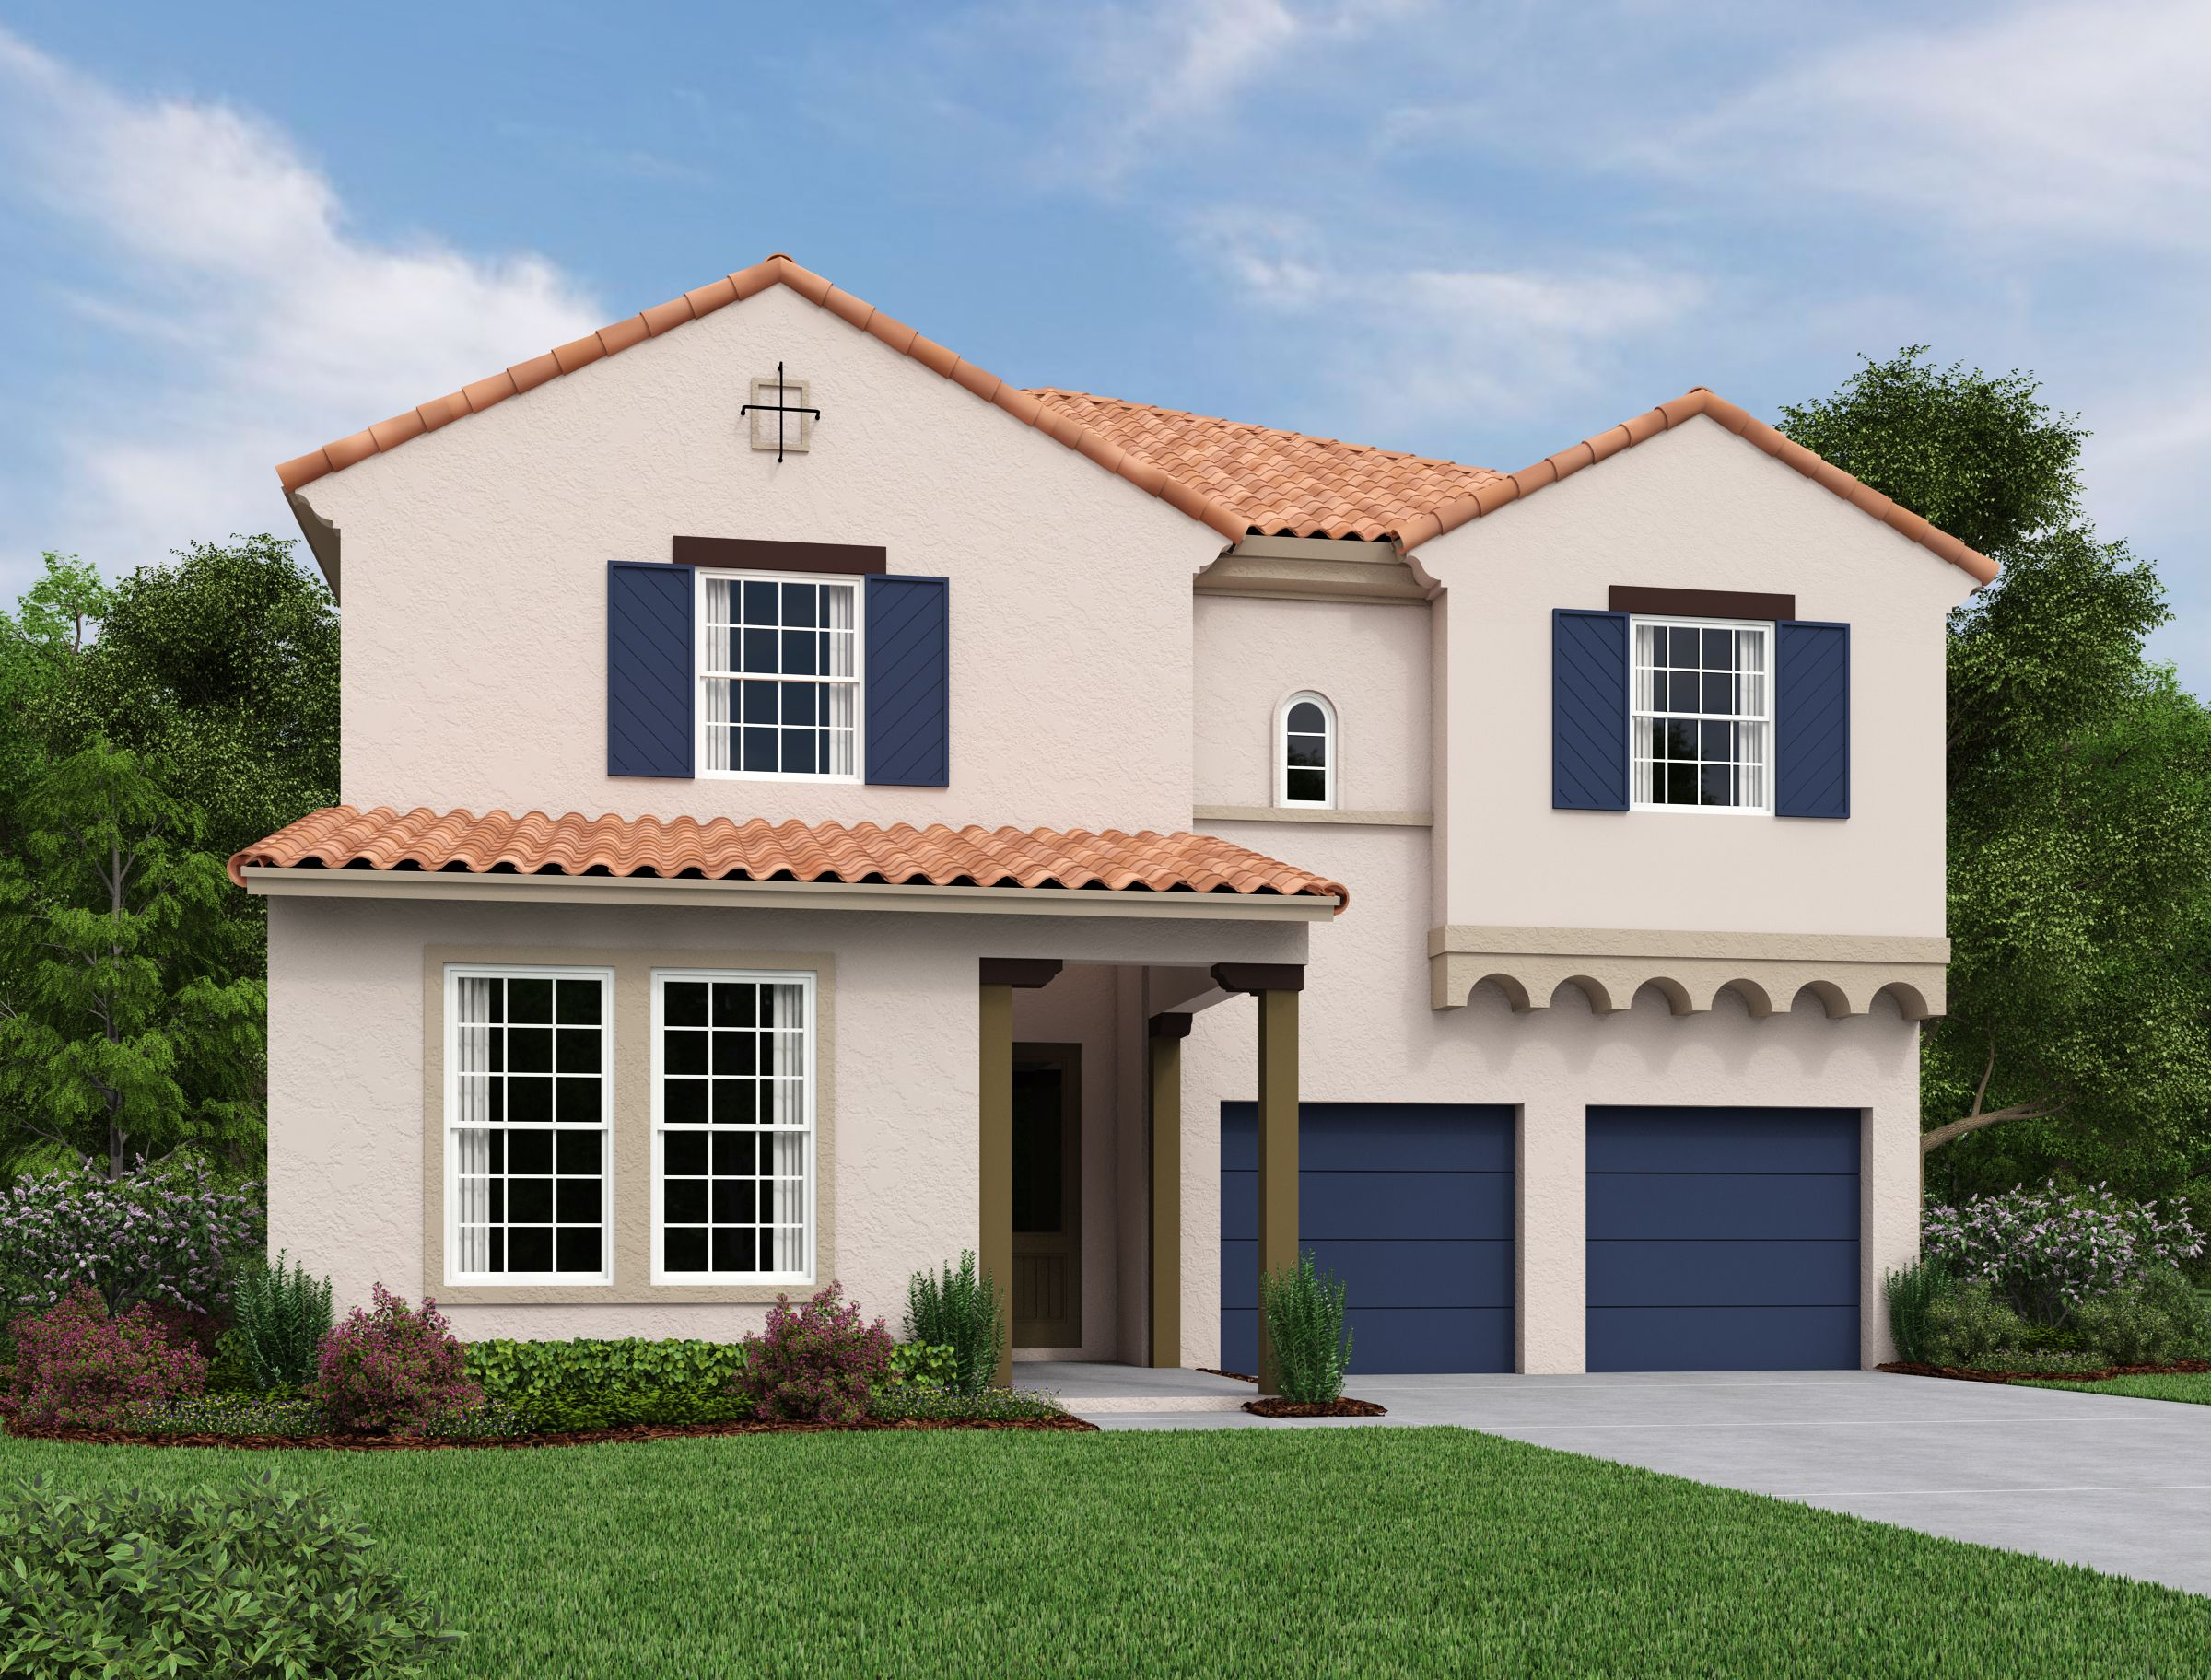 Single Family for Active at Estates At Sweetwater Country Club Traditional - St. Lawrence 2633 Roveri Avenue Apopka, Florida 32712 United States